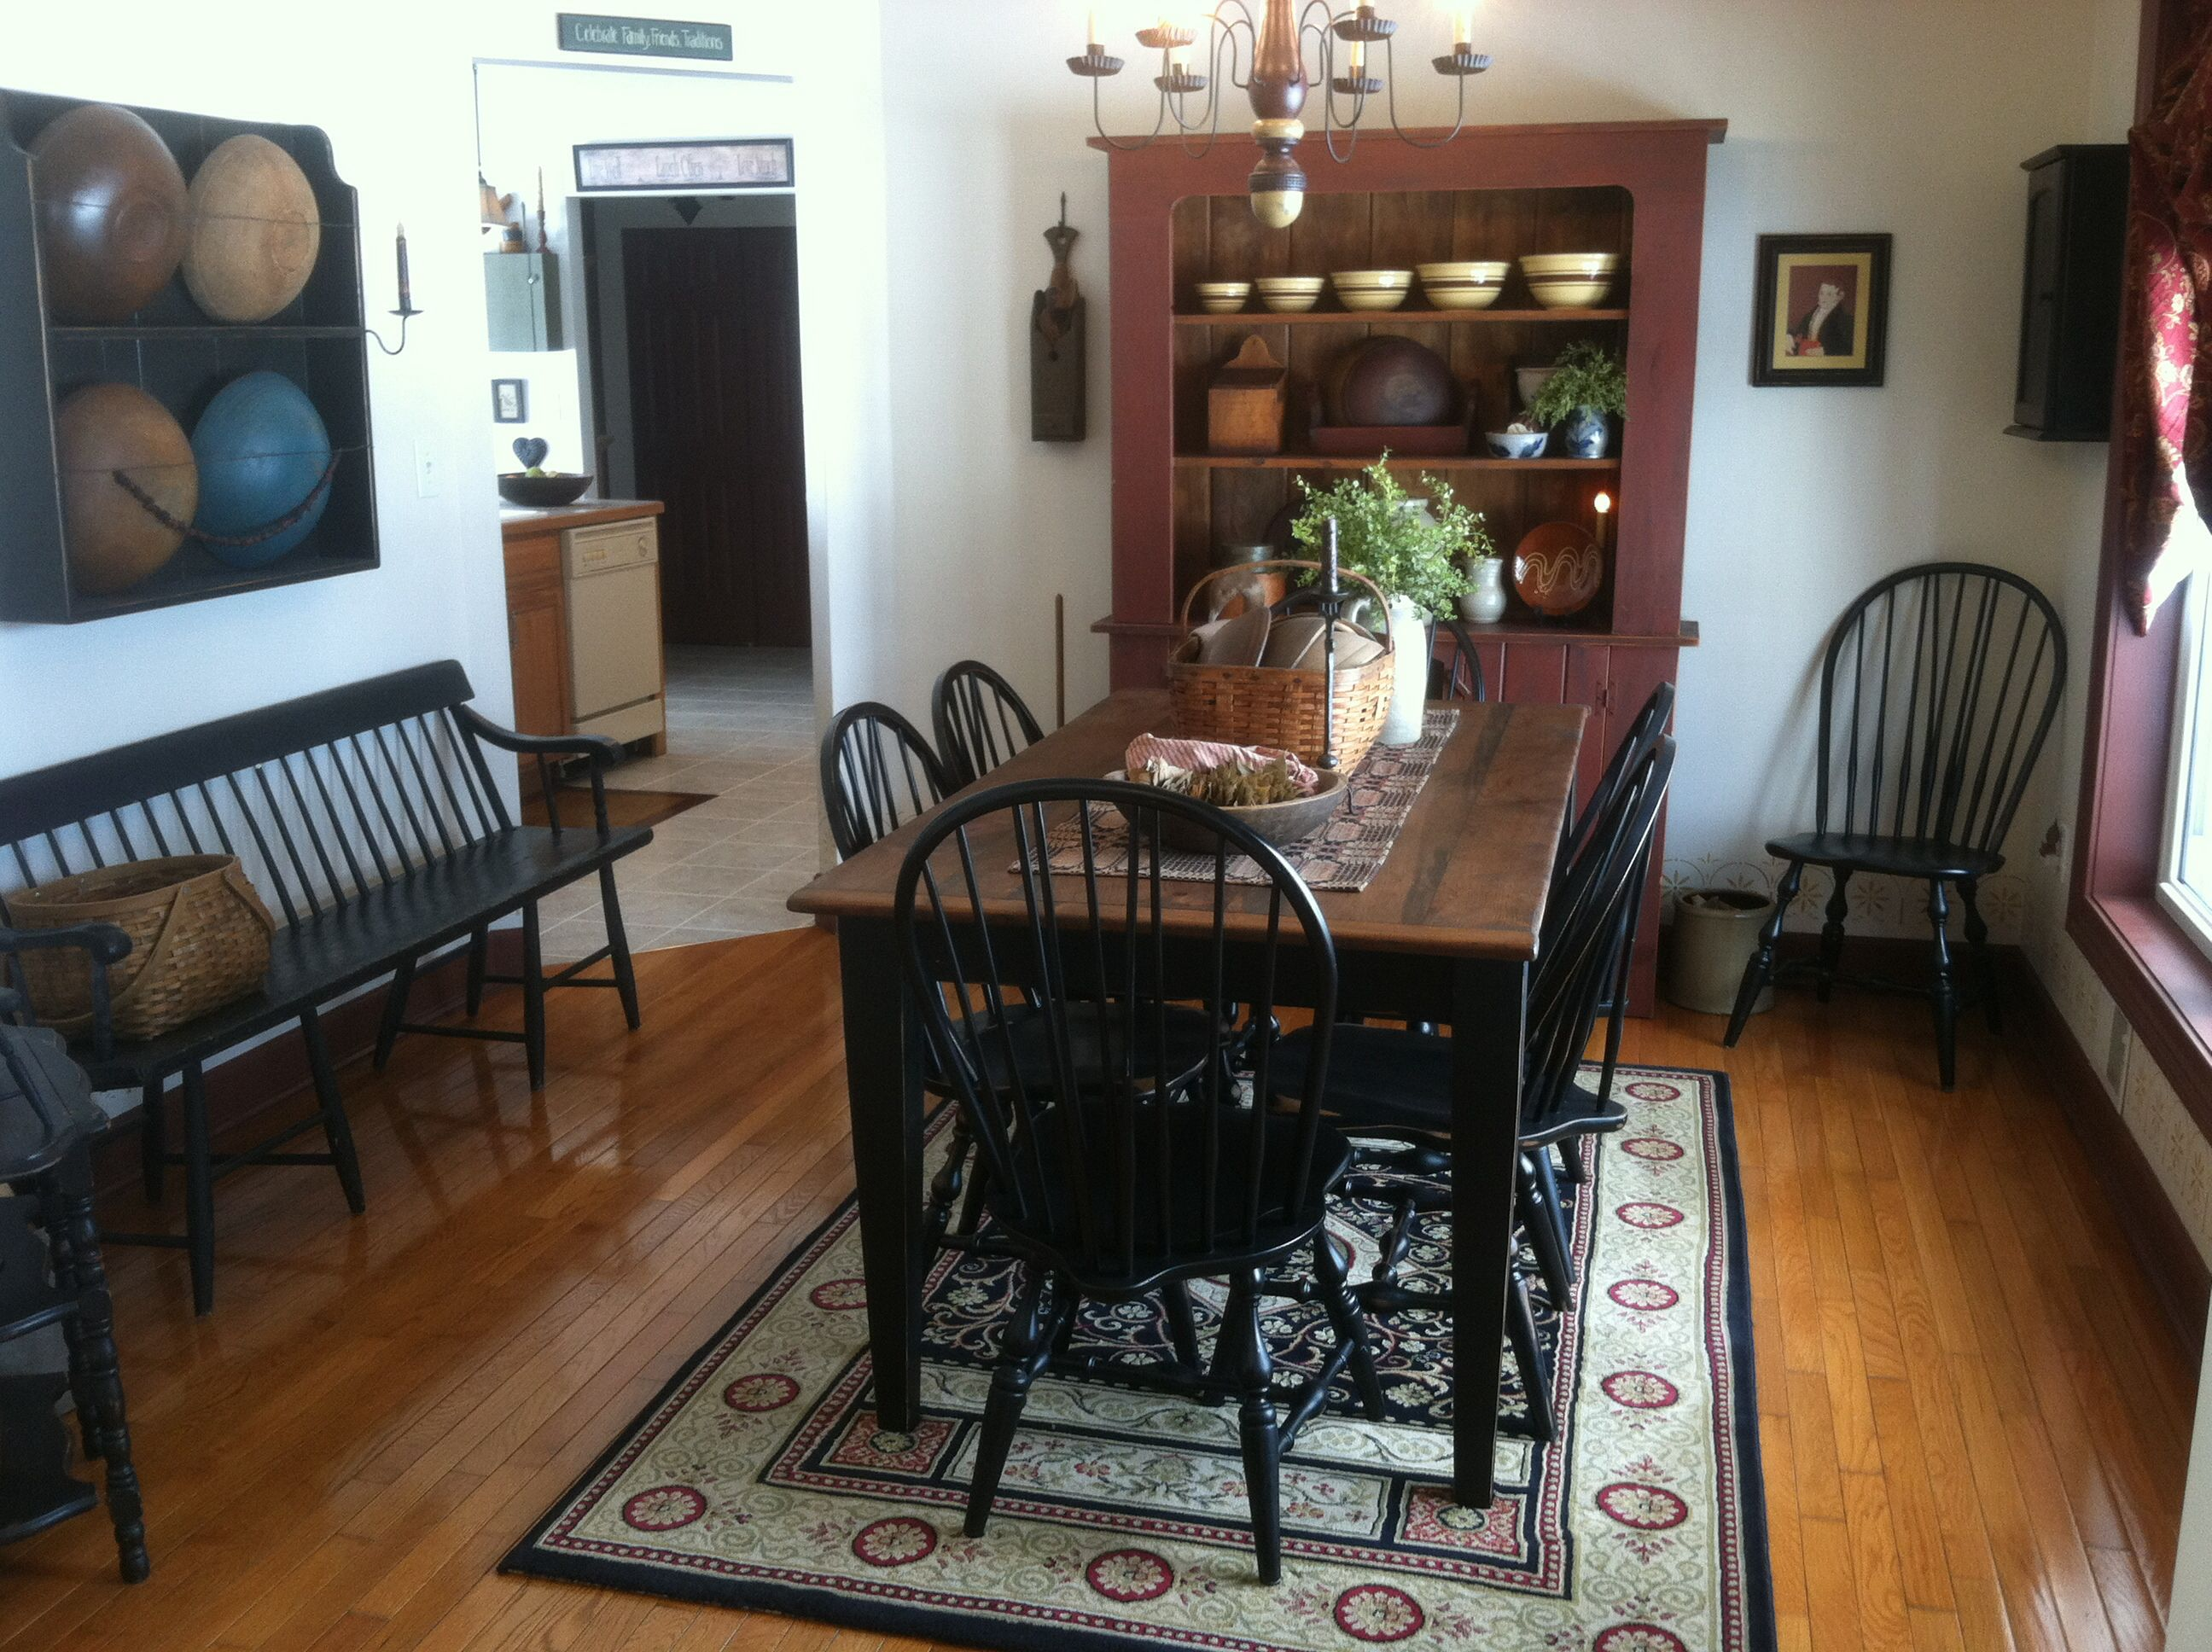 Colonial Dining Room Furniture: My Dining Room...her Dining Room Is Lovely